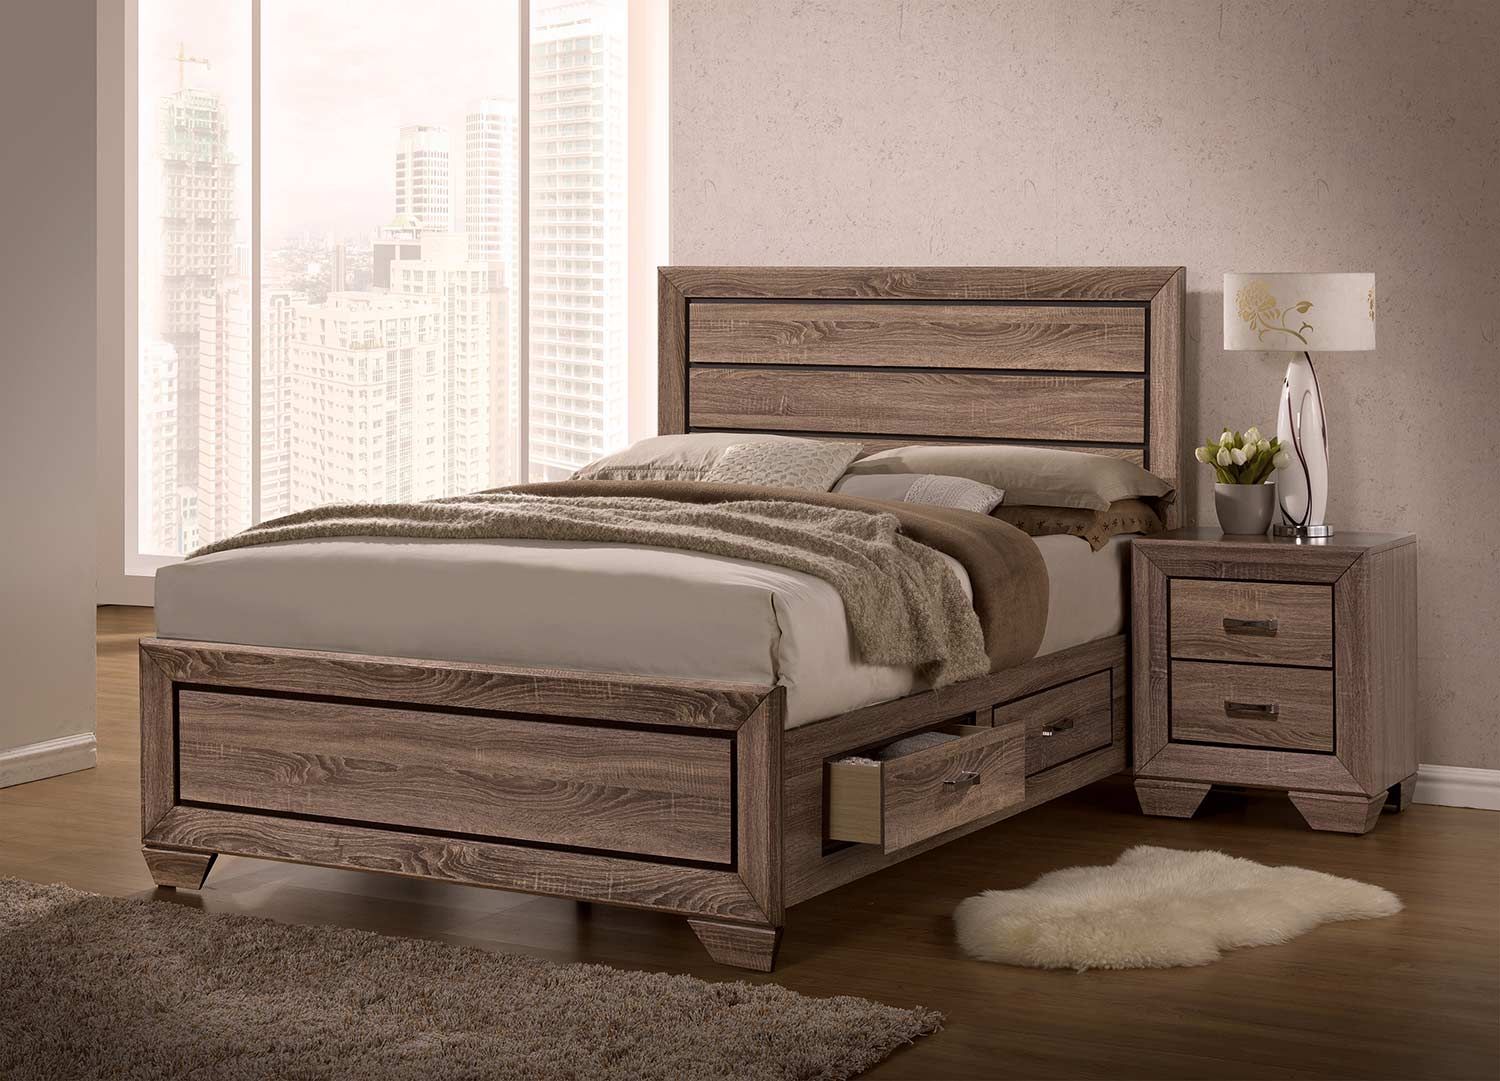 Coaster Kauffman Storage Platform Bedroom Set - Washed Taupe